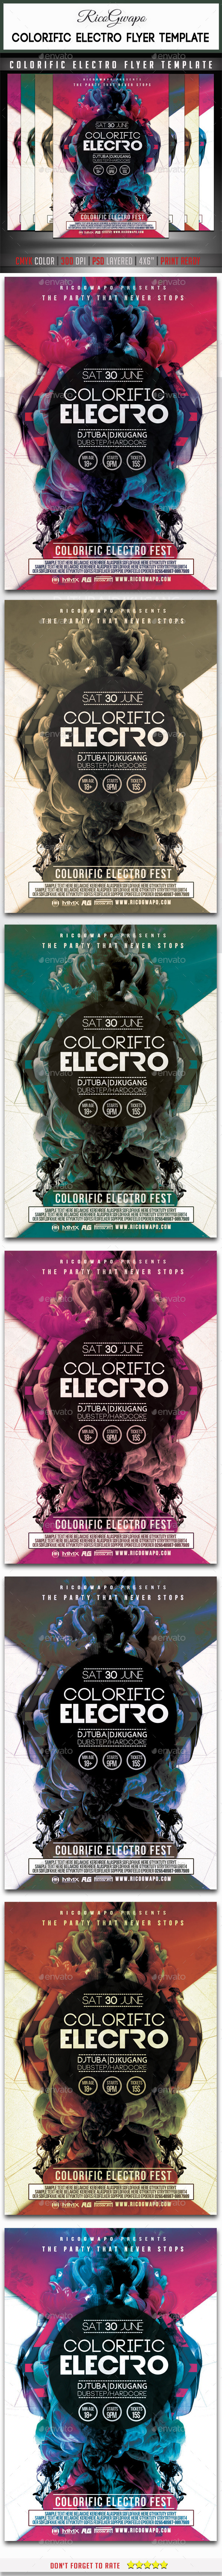 GraphicRiver Colorific Electro Flyer Template 10436067